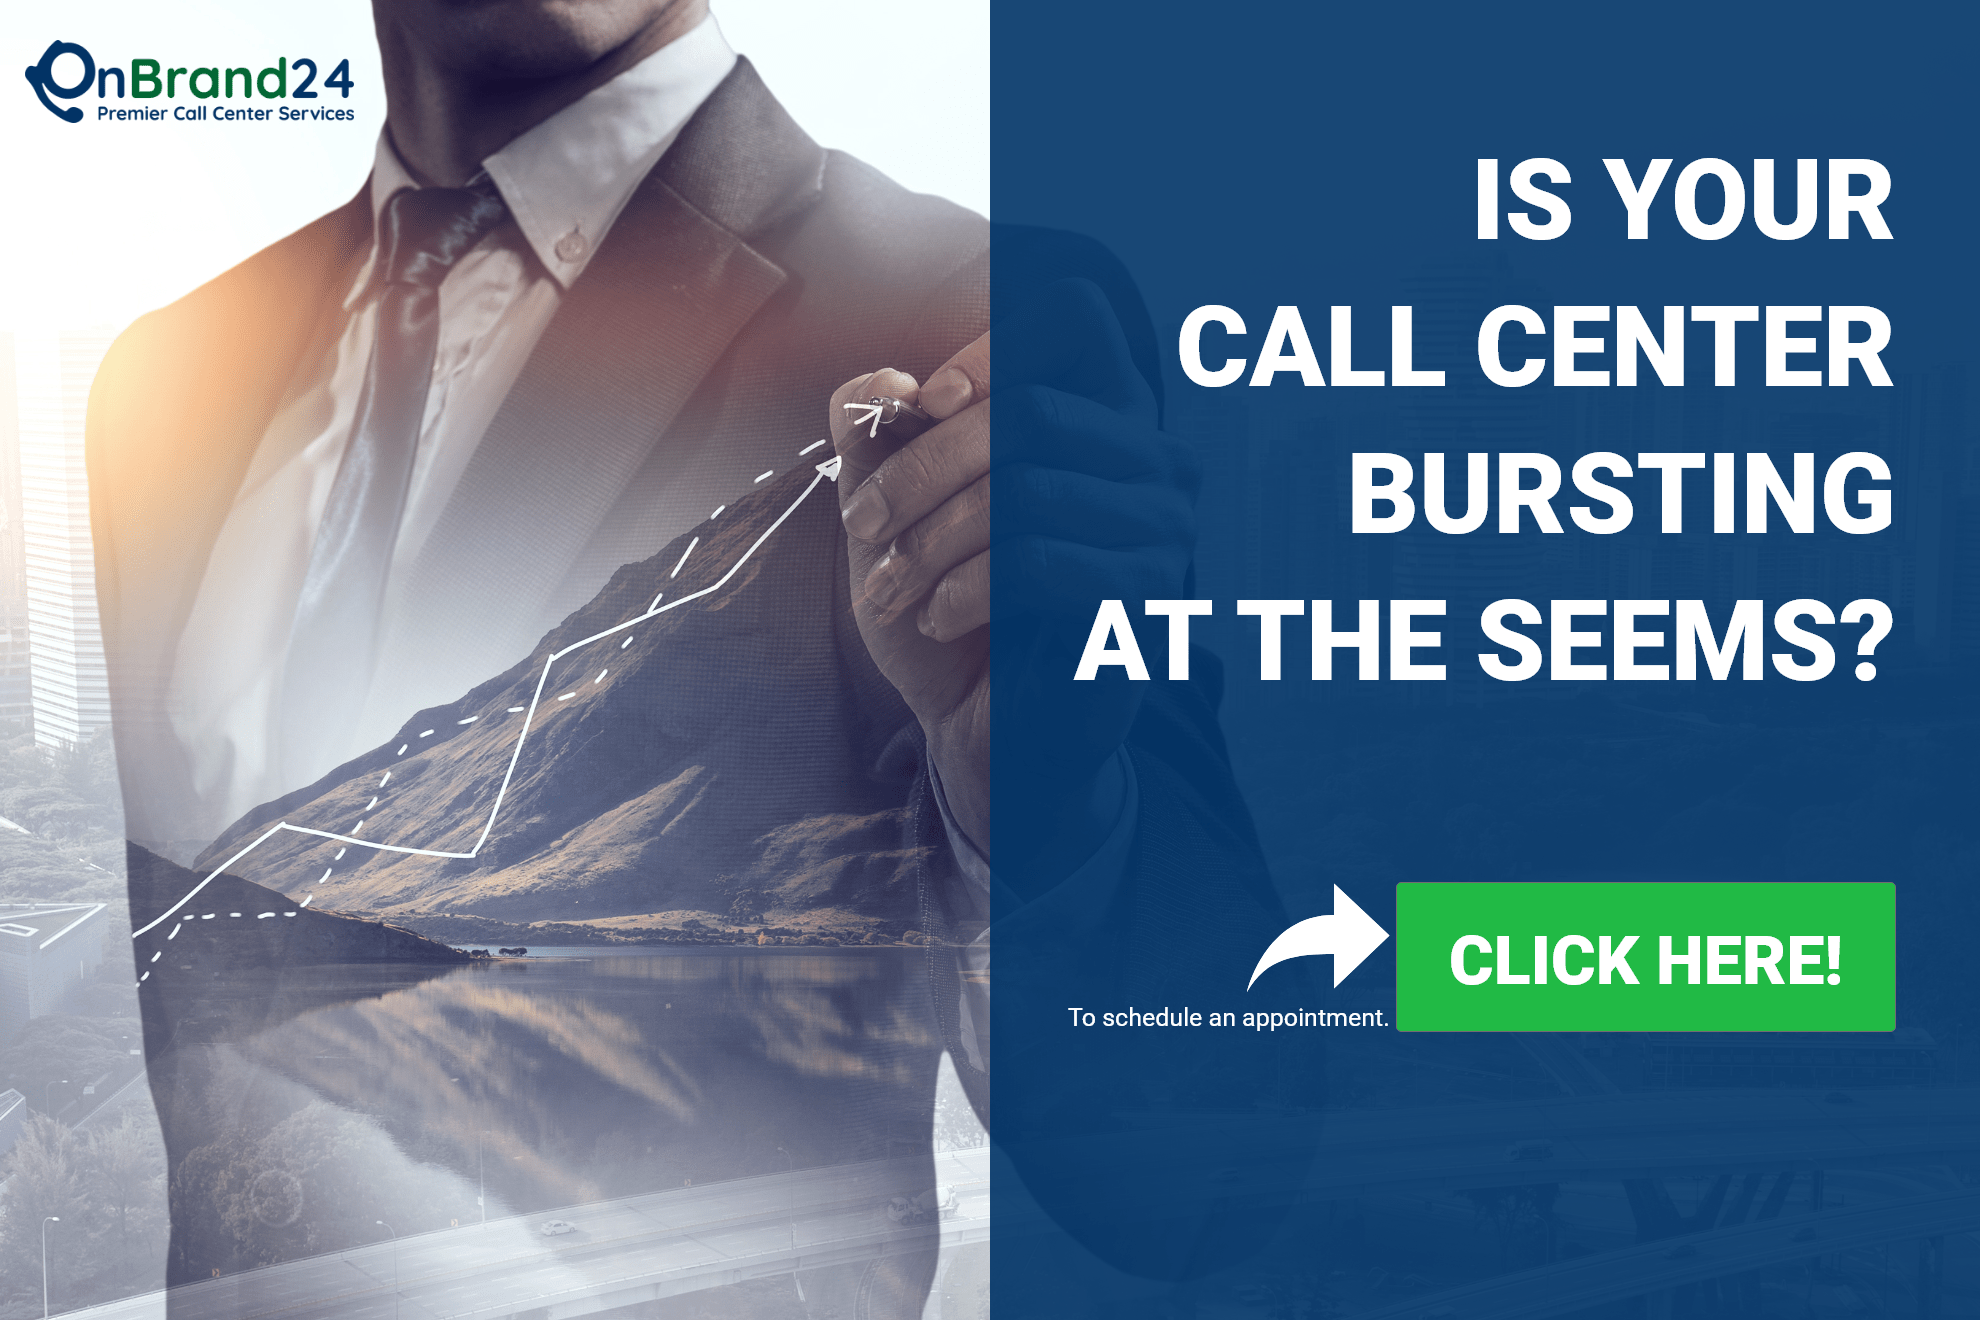 OnBrand24 Inbound Call Center Services and Outbound Call Center Services